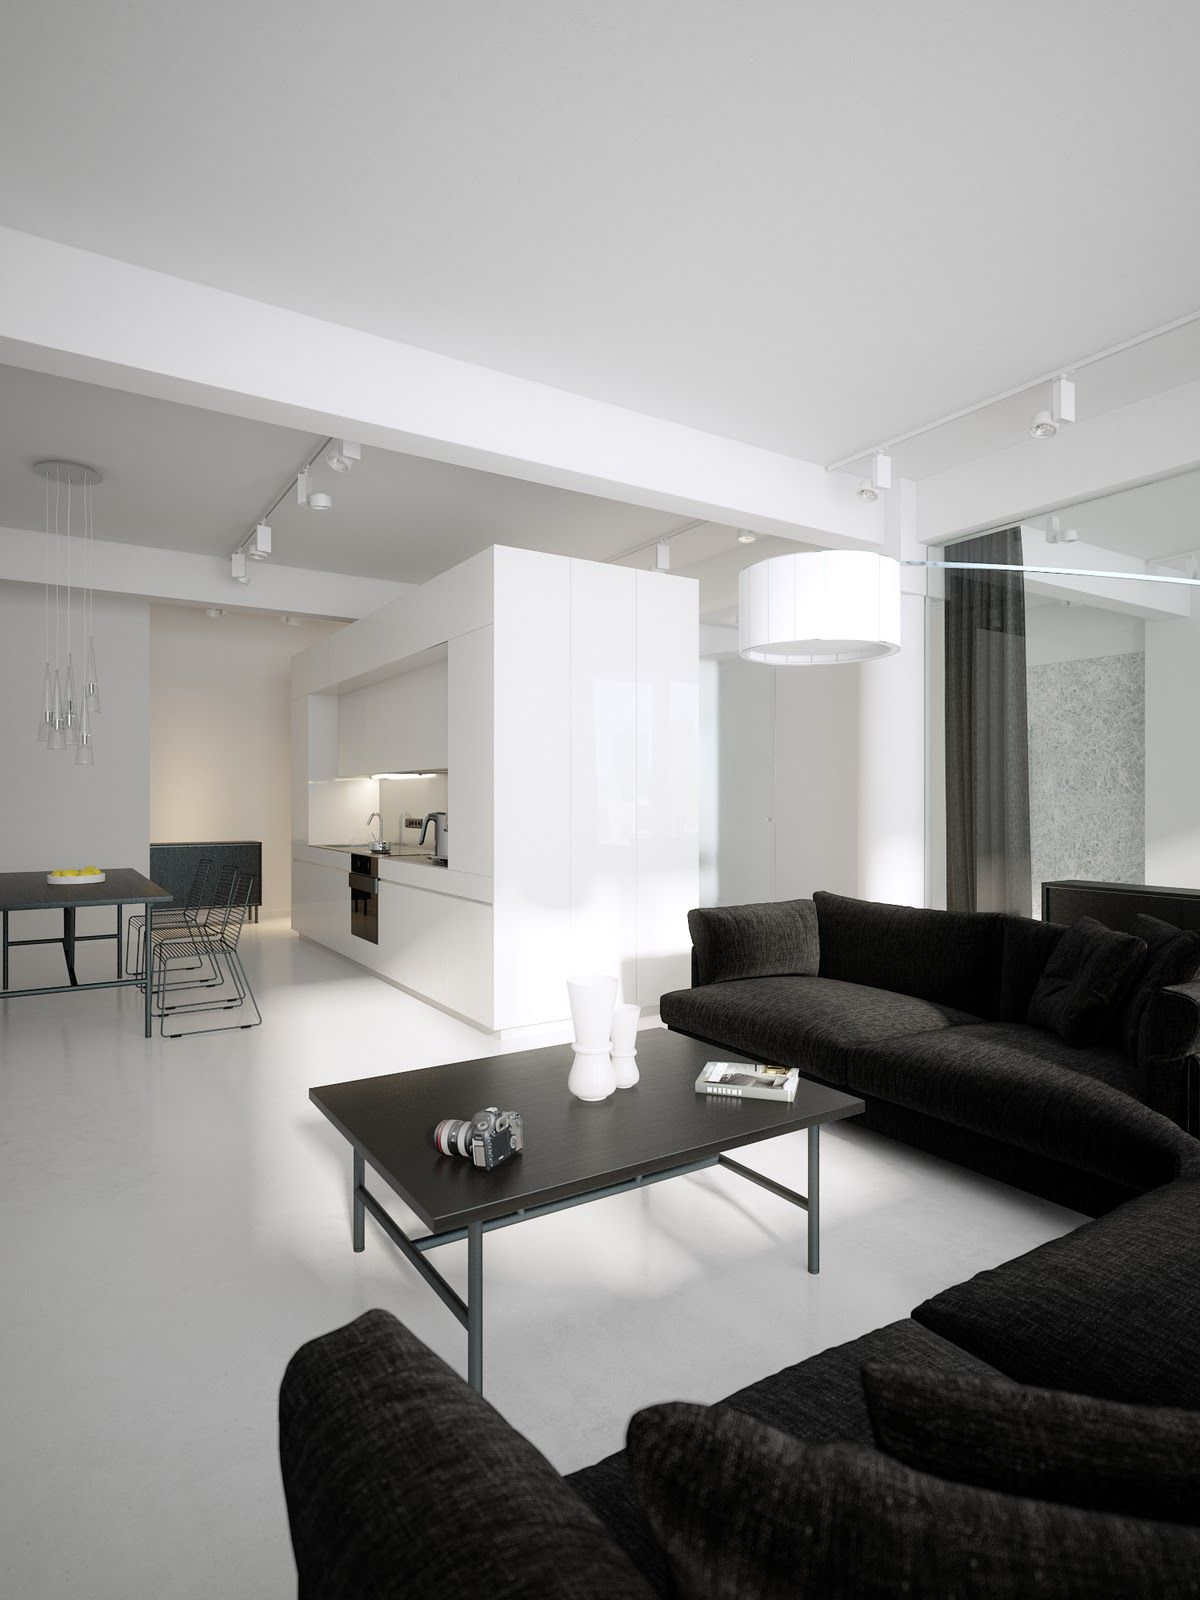 Interior home designs that embody the spirit of minimalism see latest in minimalist design including for  apartment also best principles modern  stunning rh pinterest